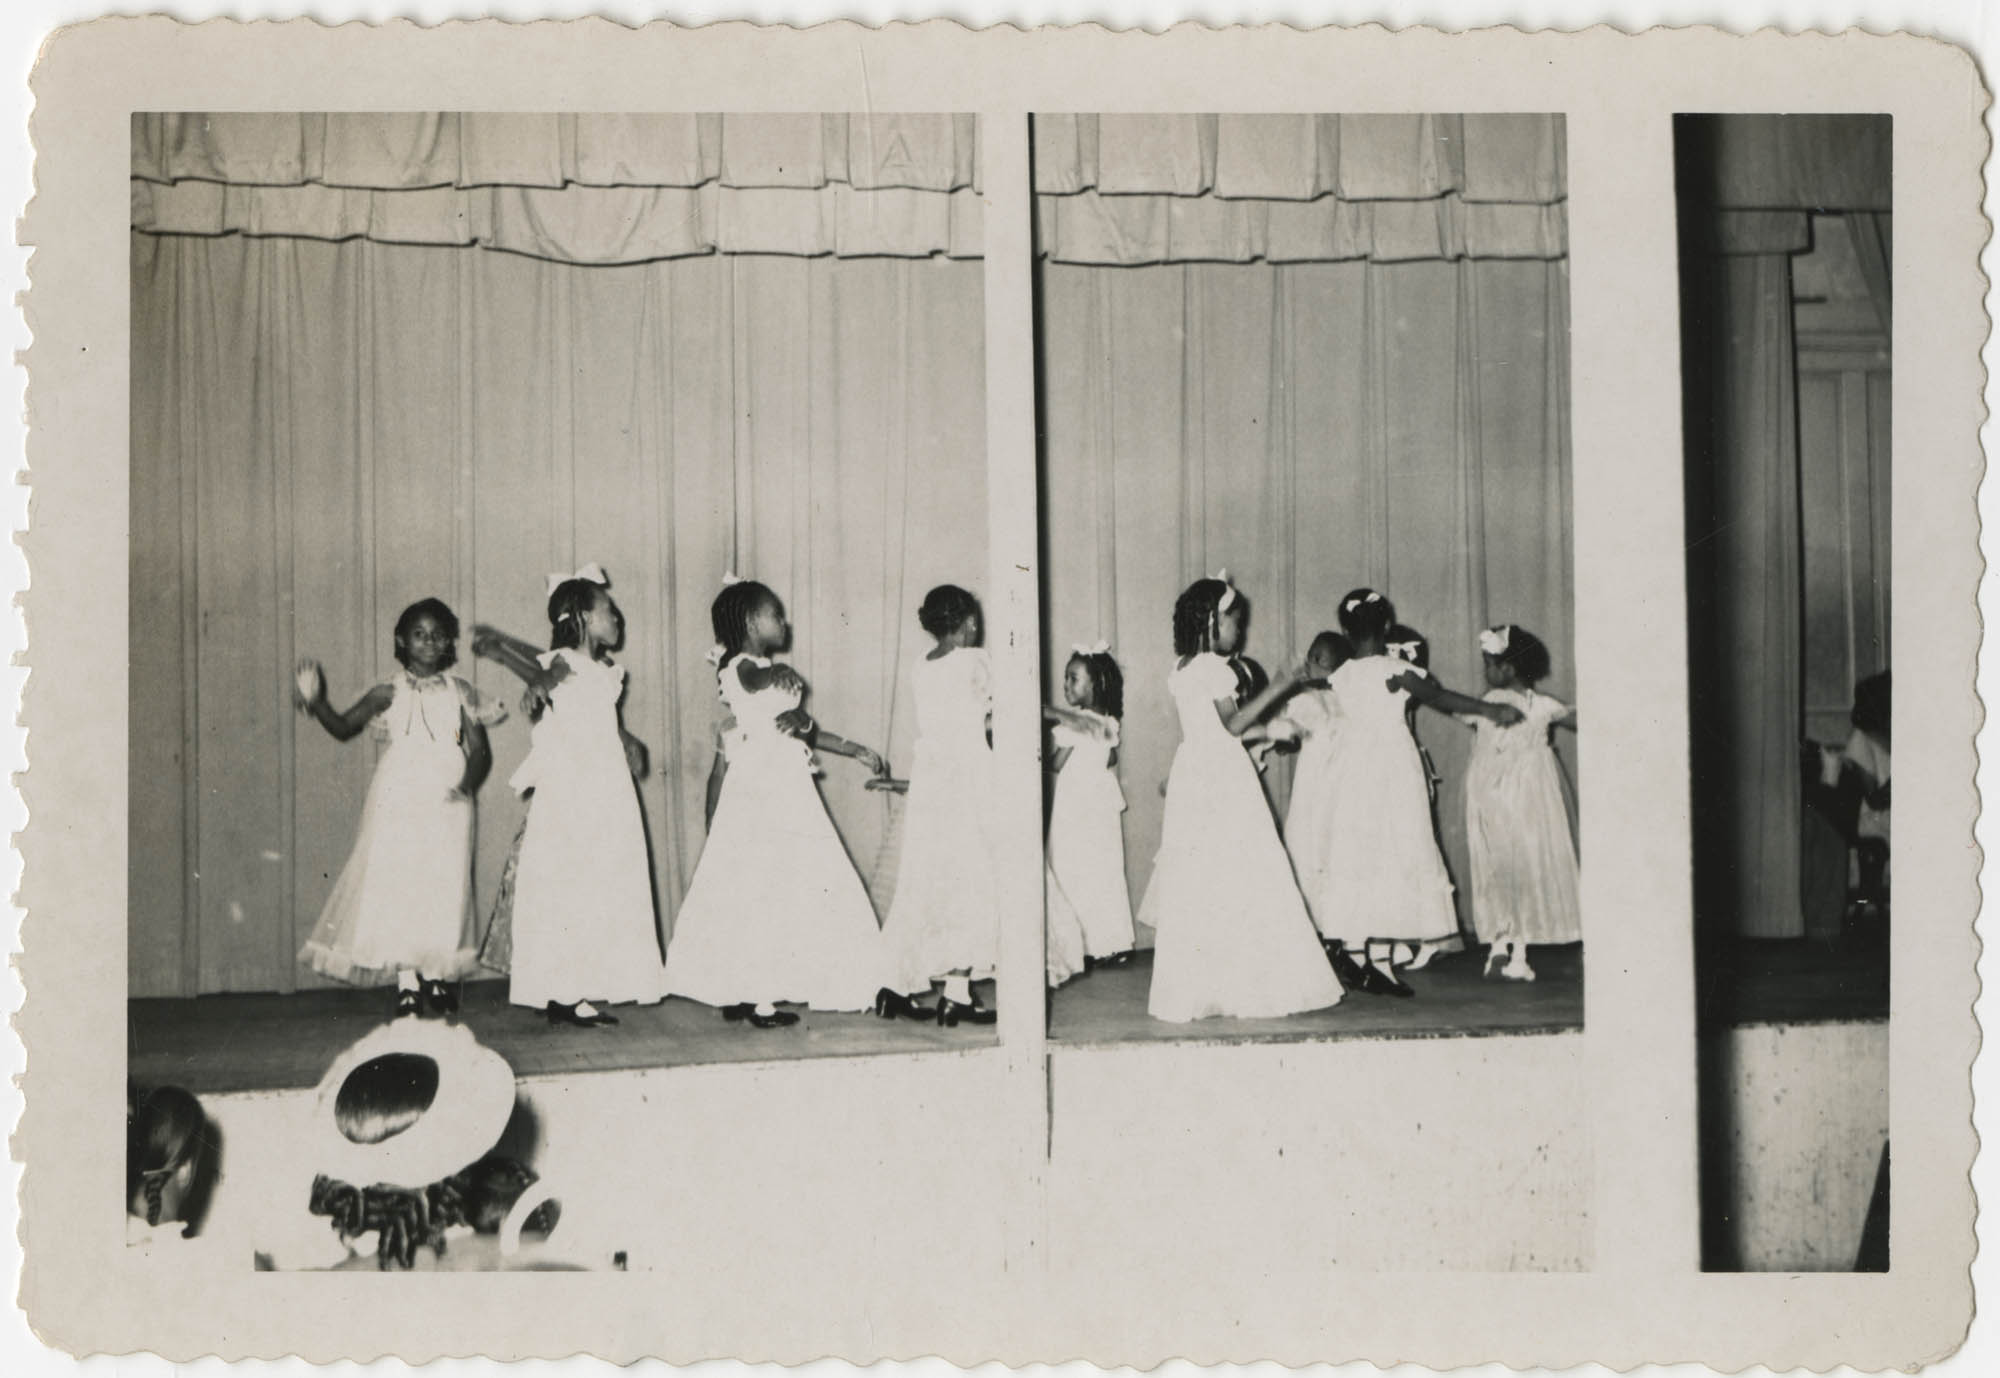 Photograph of Girls Dancing in White Dresses